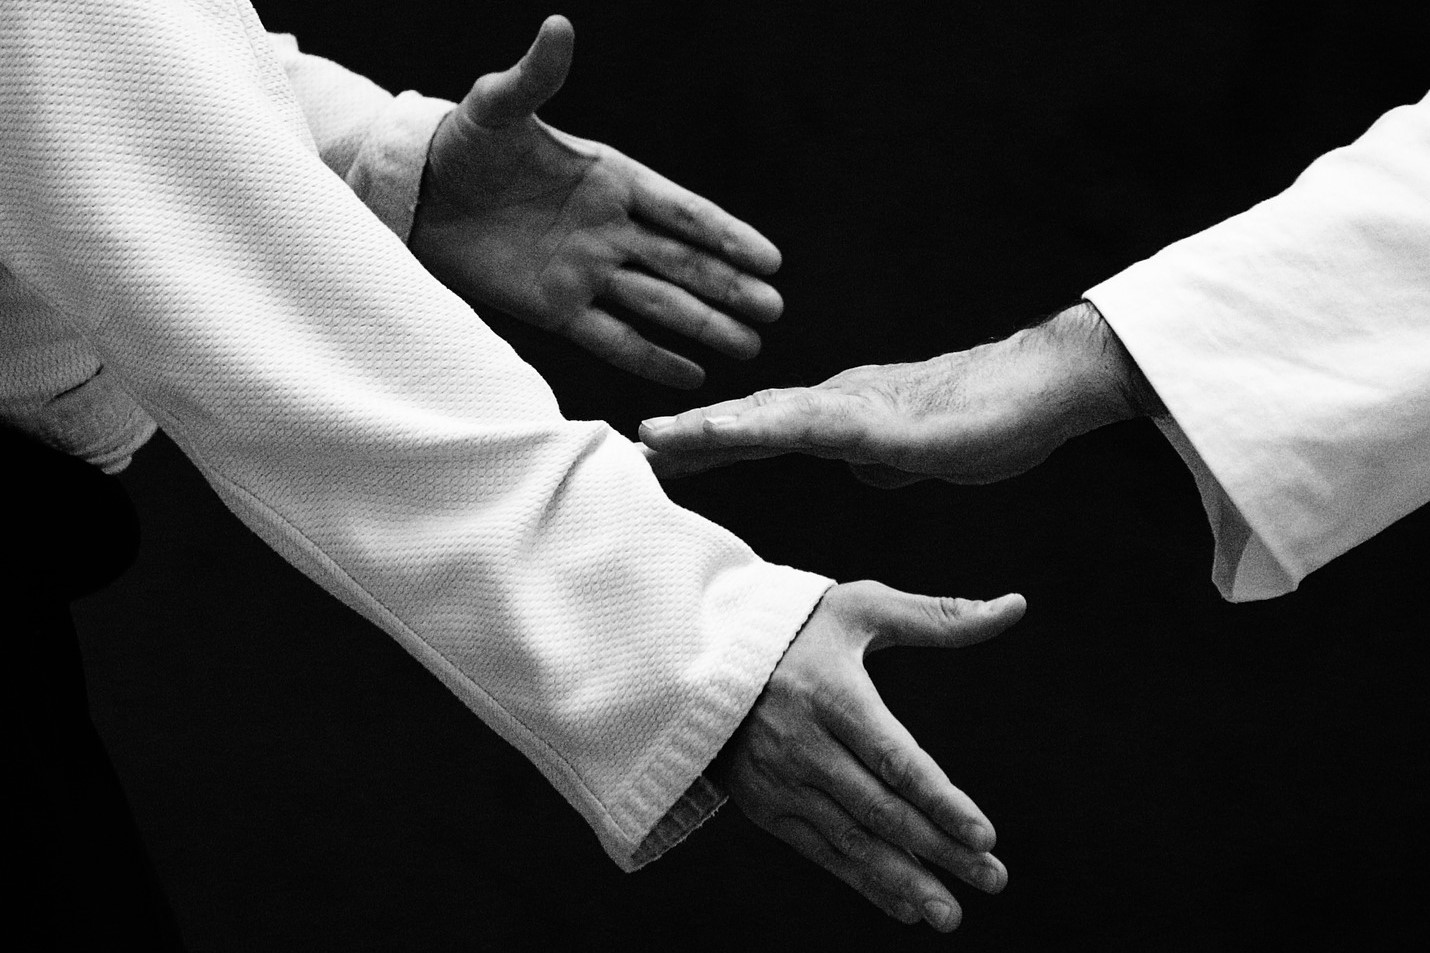 Aikido Handshake: Being Visible and Vulnerable